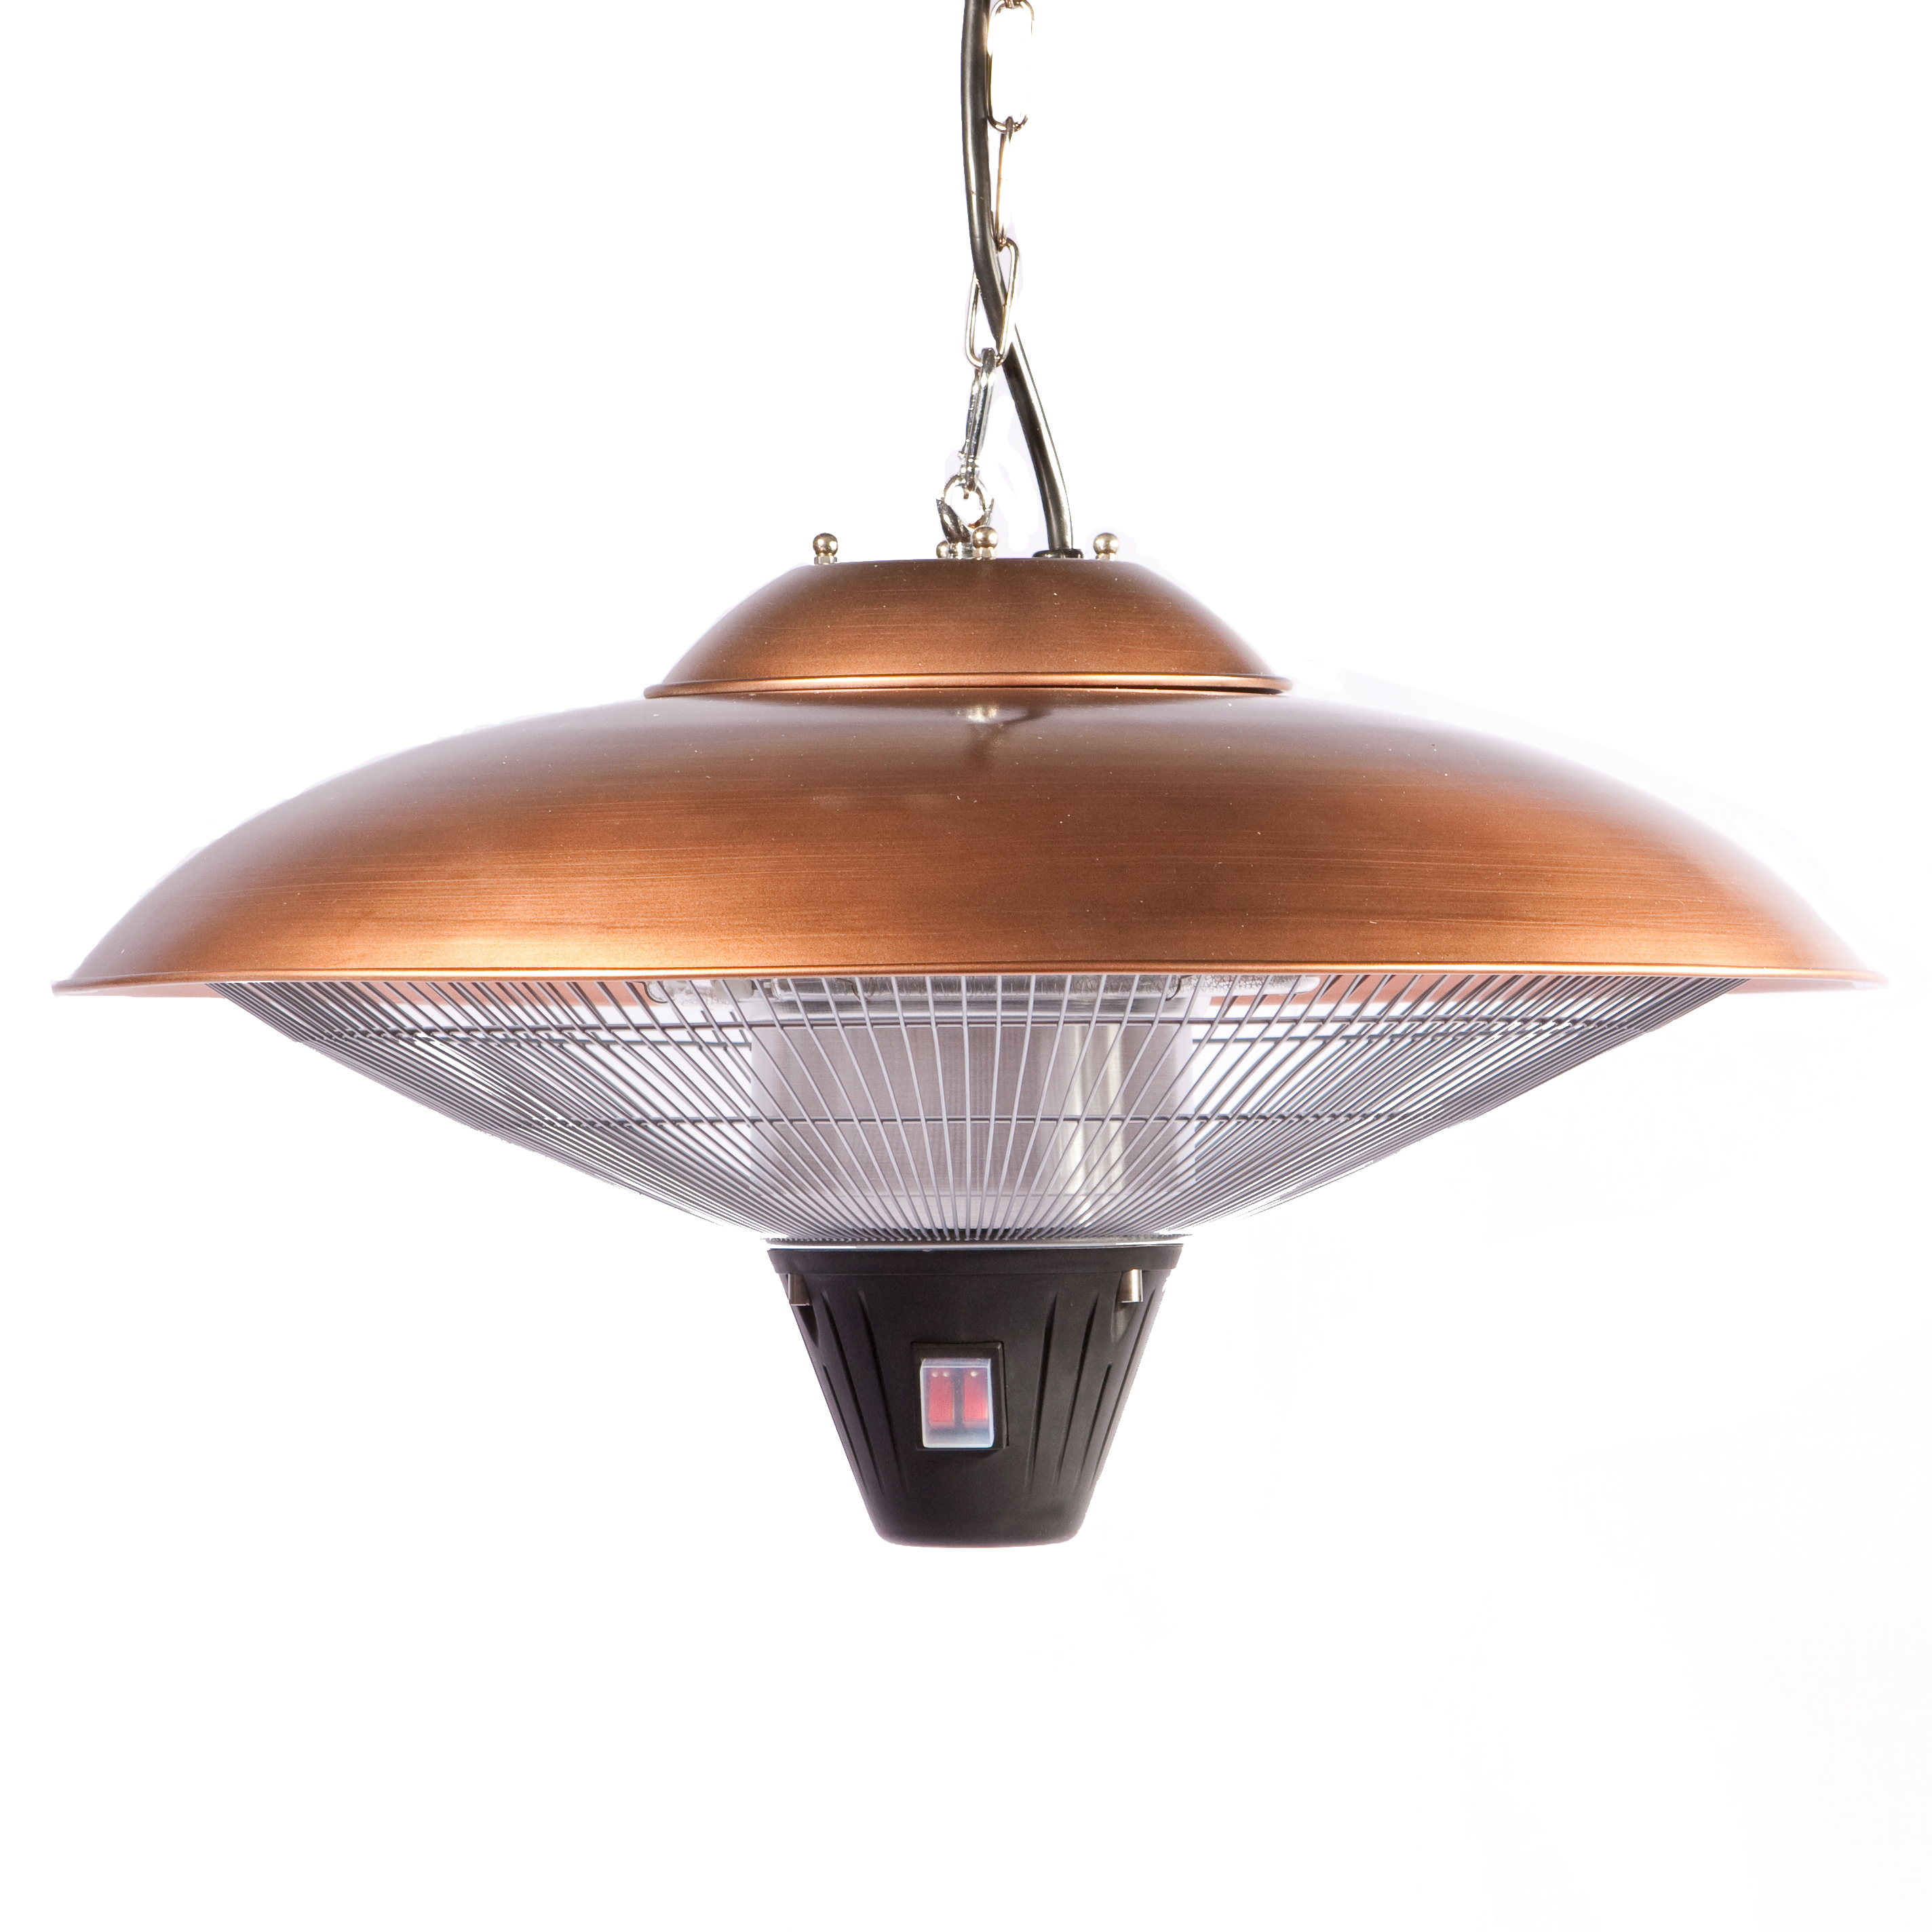 copper hanging patio heater well